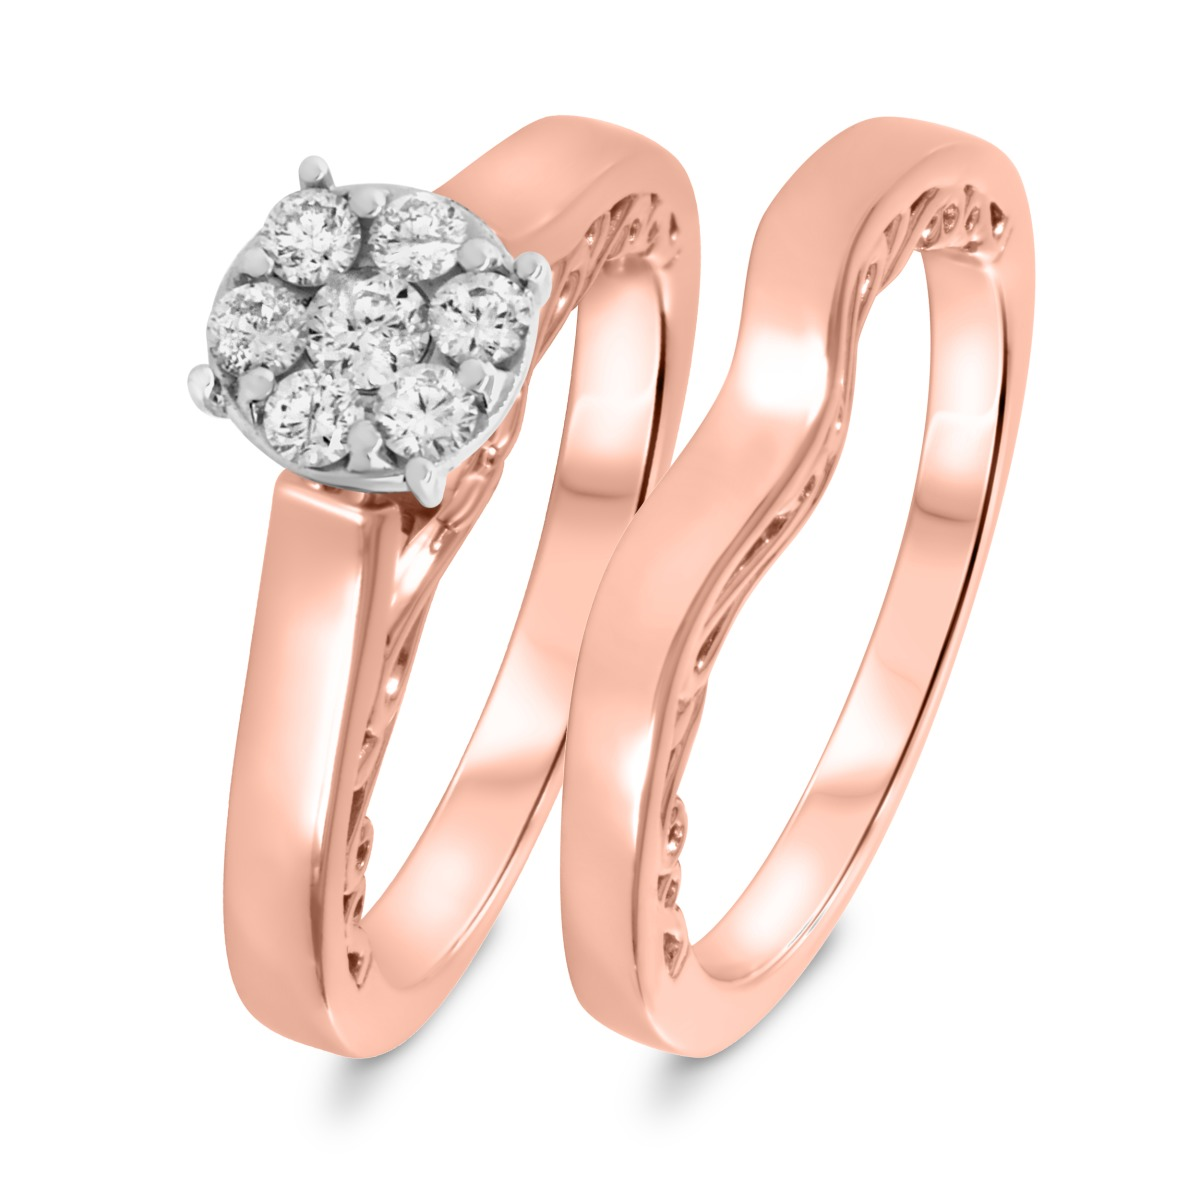 1/5 CT. T.W. Diamond Women's Bridal Wedding Ring Set 10K Rose Gold